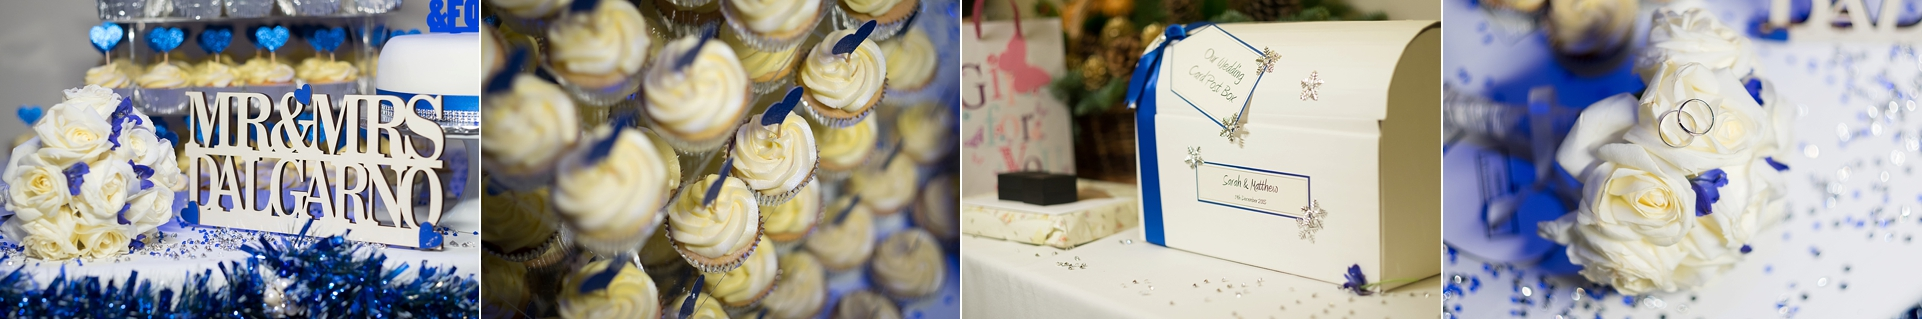 wedding photographer upper house barlaston stoke on trent 10.jpg